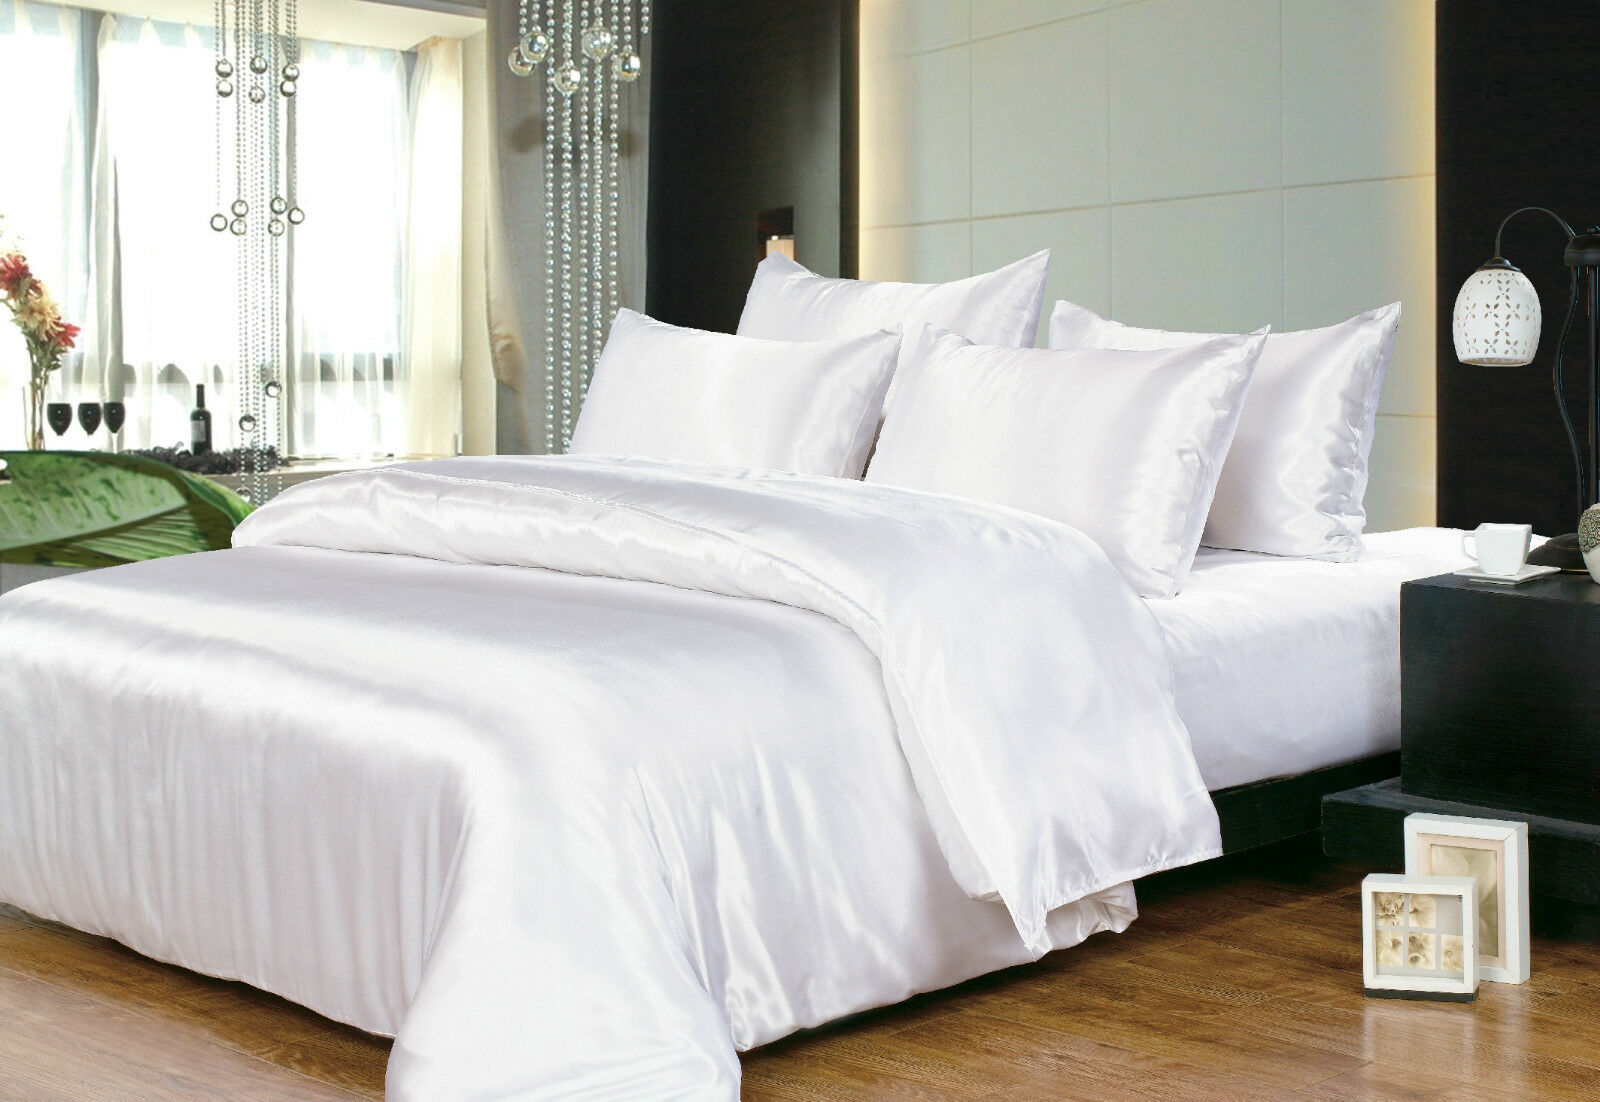 Hotel Quality Silk Satin King Size Bed Sheet Set White